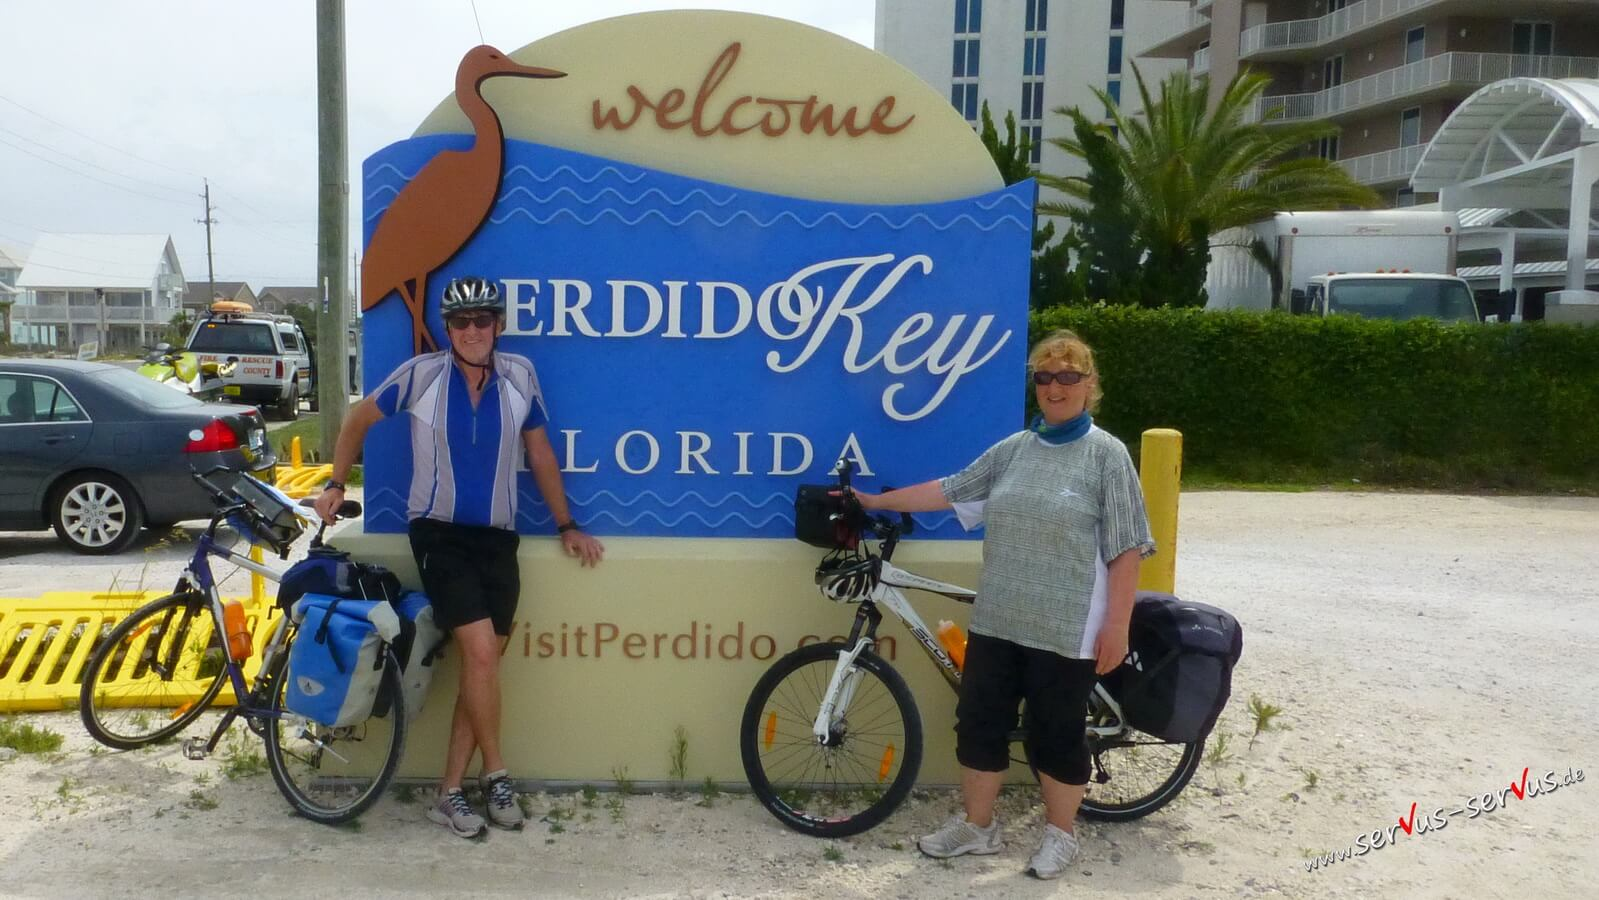 Mit dem Crossbike in Florida